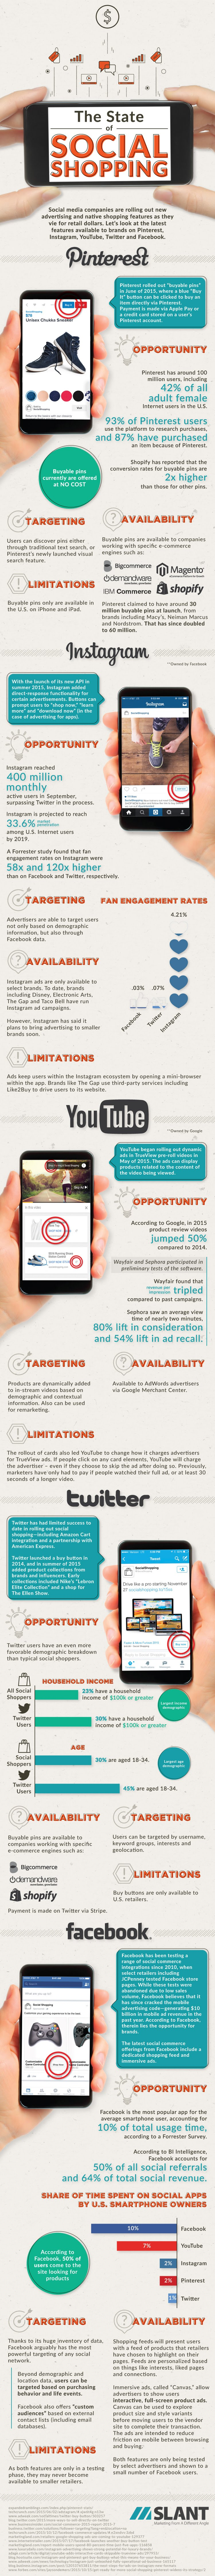 The State Of Social Shopping - #infographic